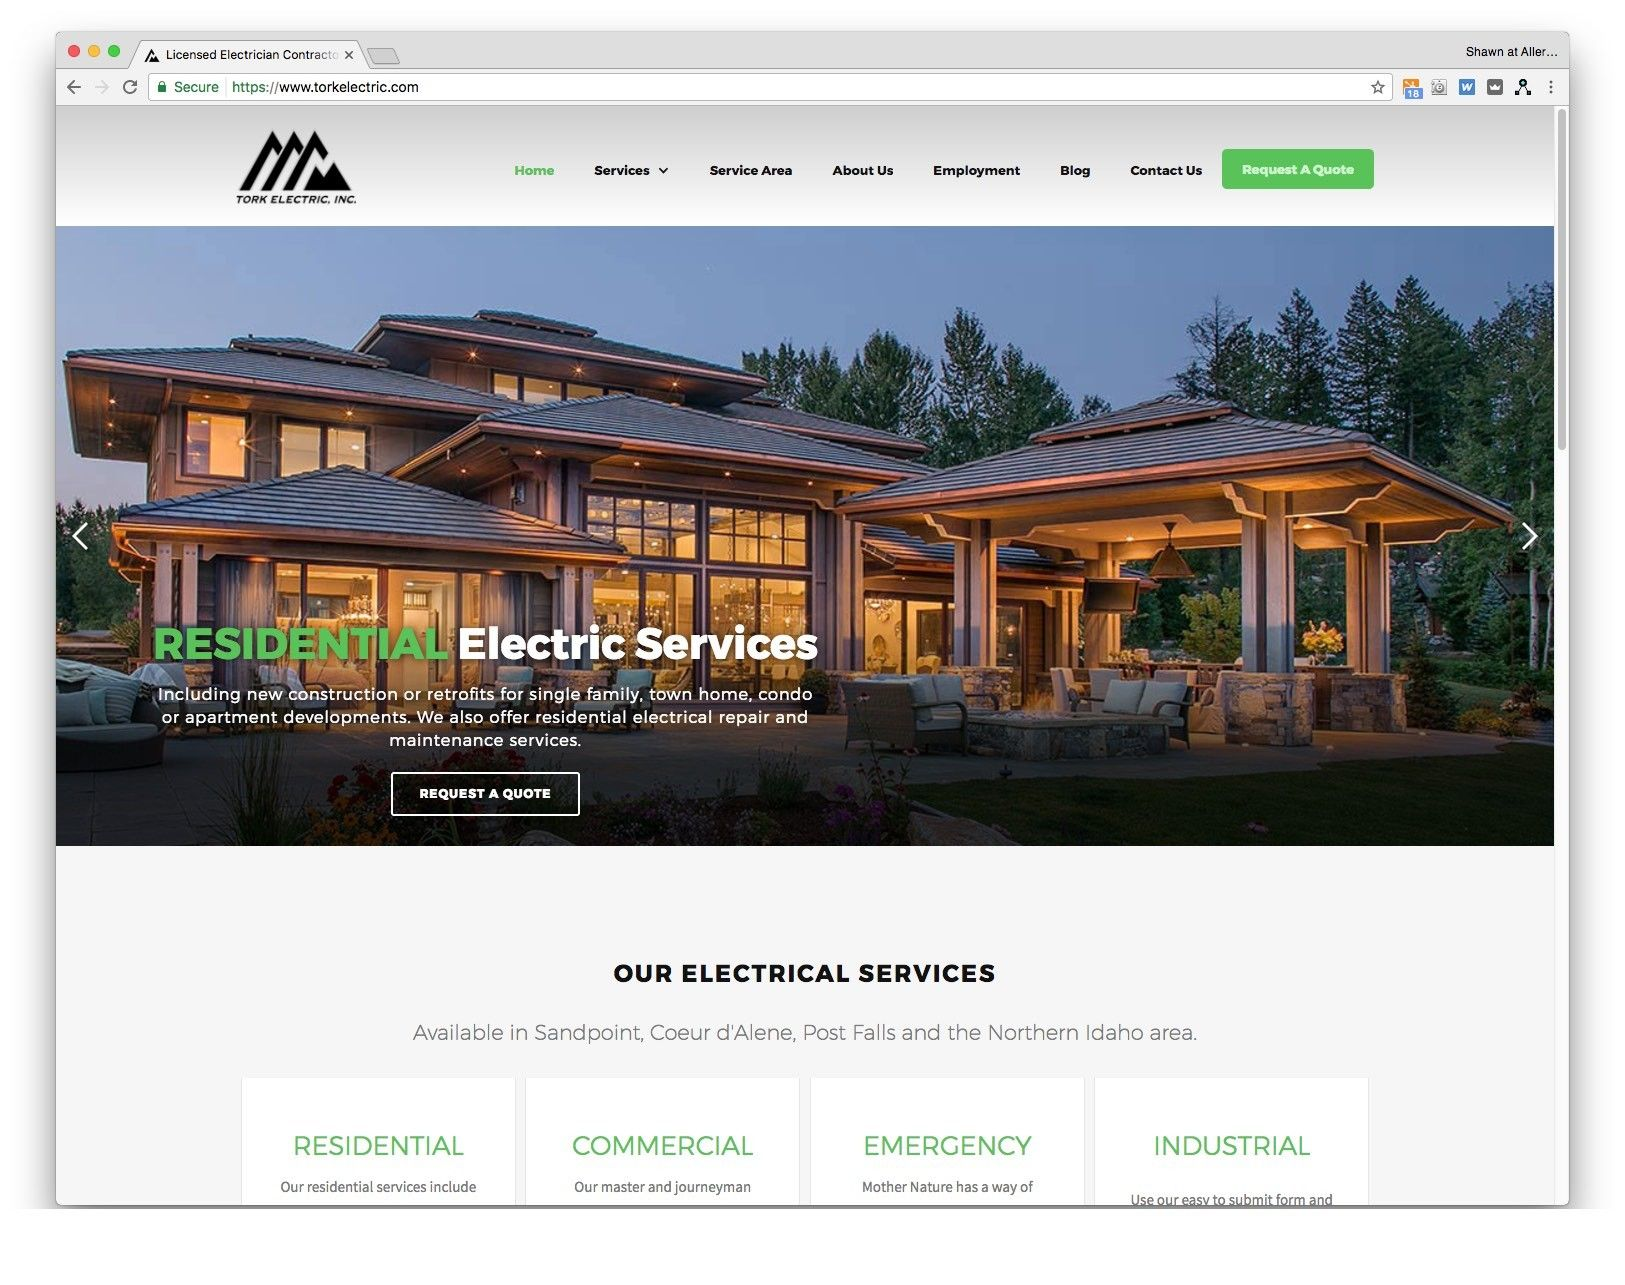 The Tork Electric Inc. website was redesigned and content updated to improve SEO. We made it responsive so it can be viewed more accurately on all devices. The site utilizes the pixelcactus platform thus making future edits more manageable and time-cost effective.